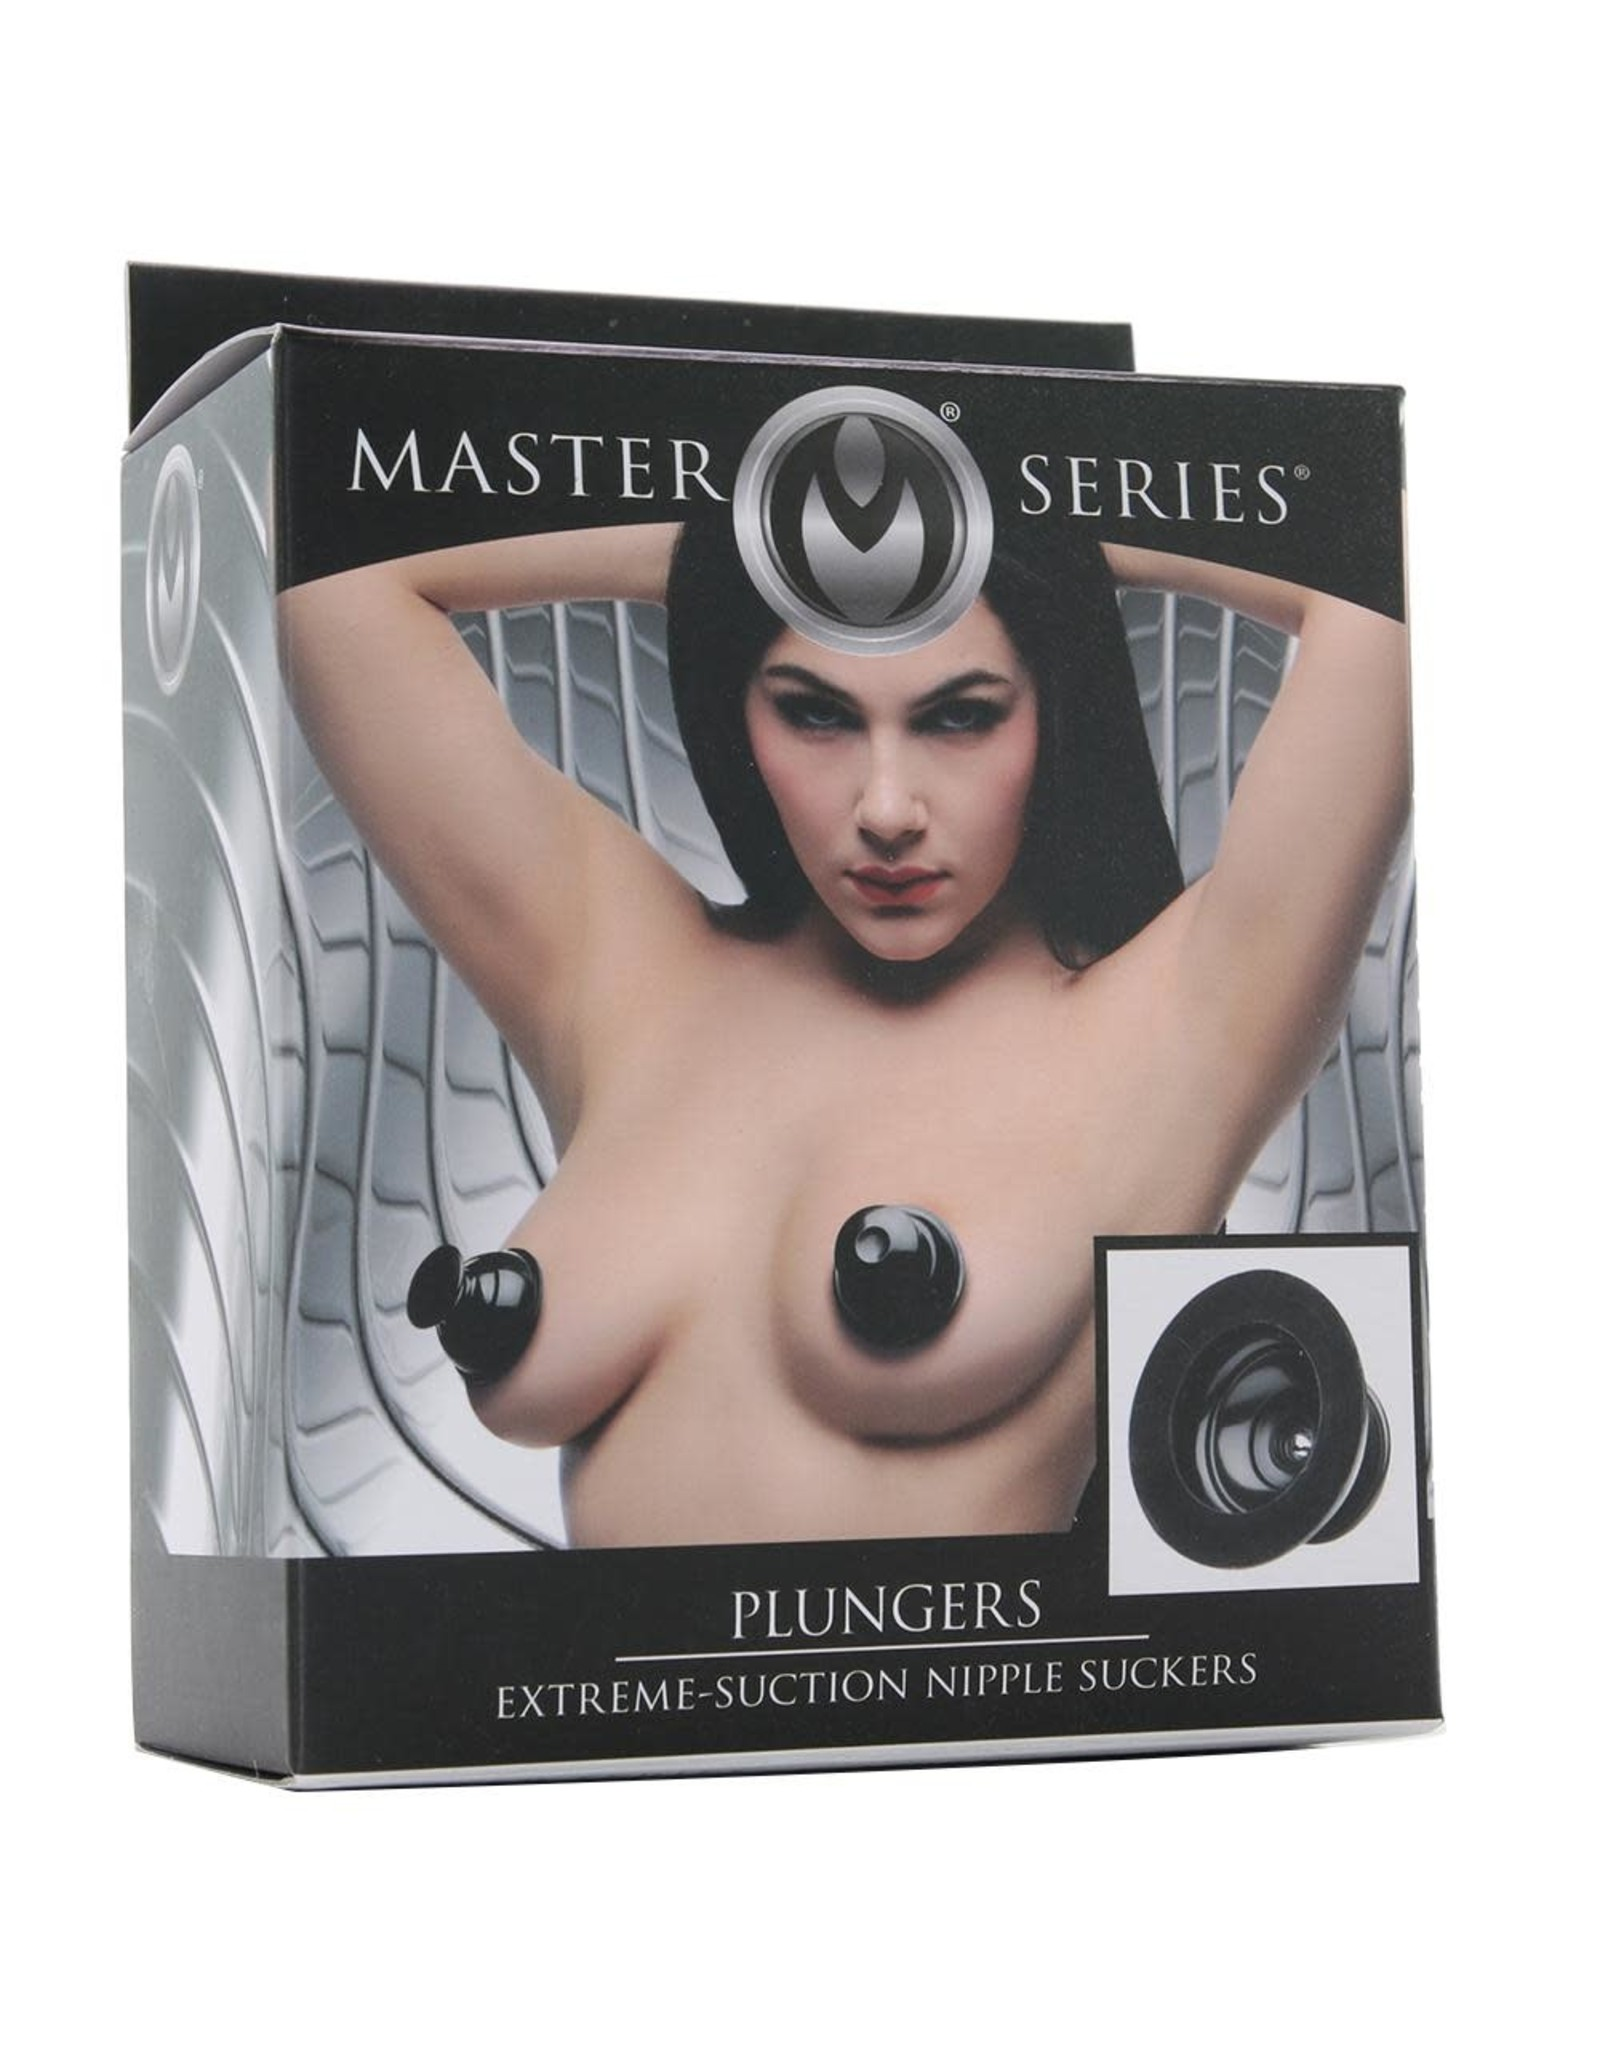 MASTER SERIES - PLUNGERS - EXTREME NIPPLE SUCKERS